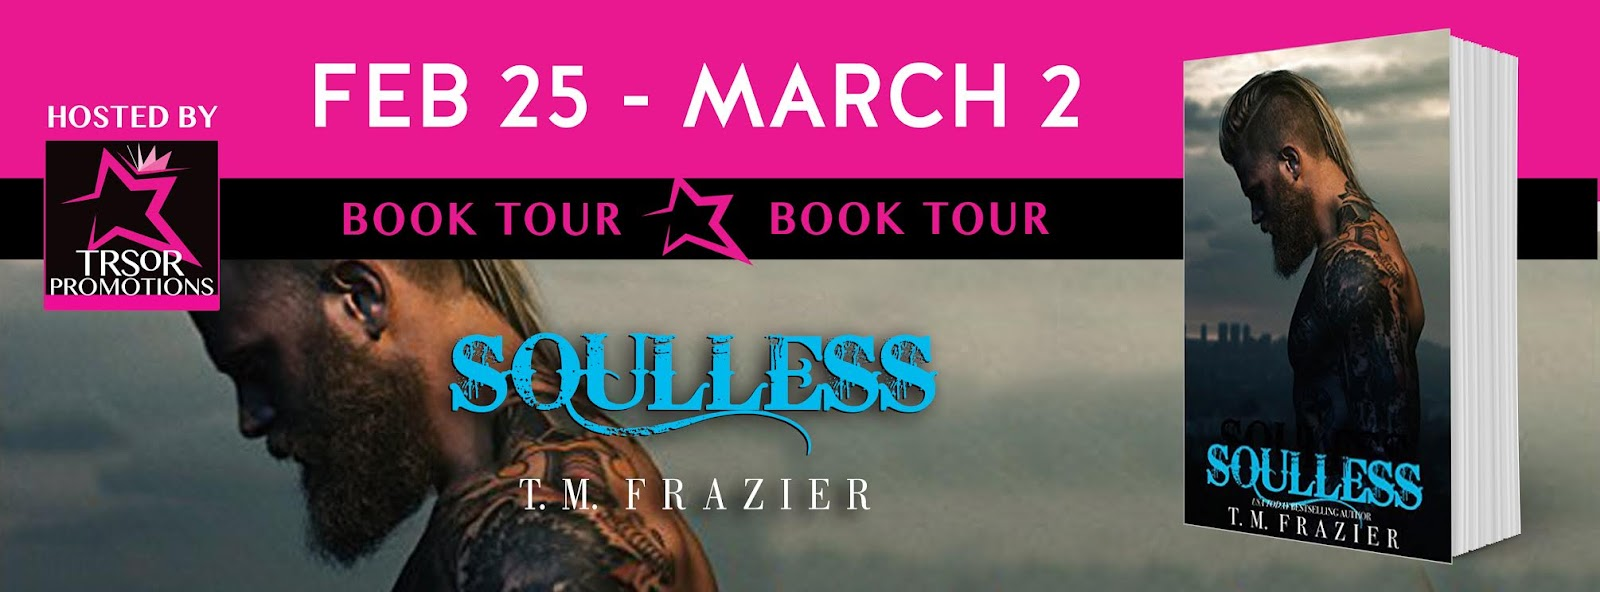 soulless book tour.jpg